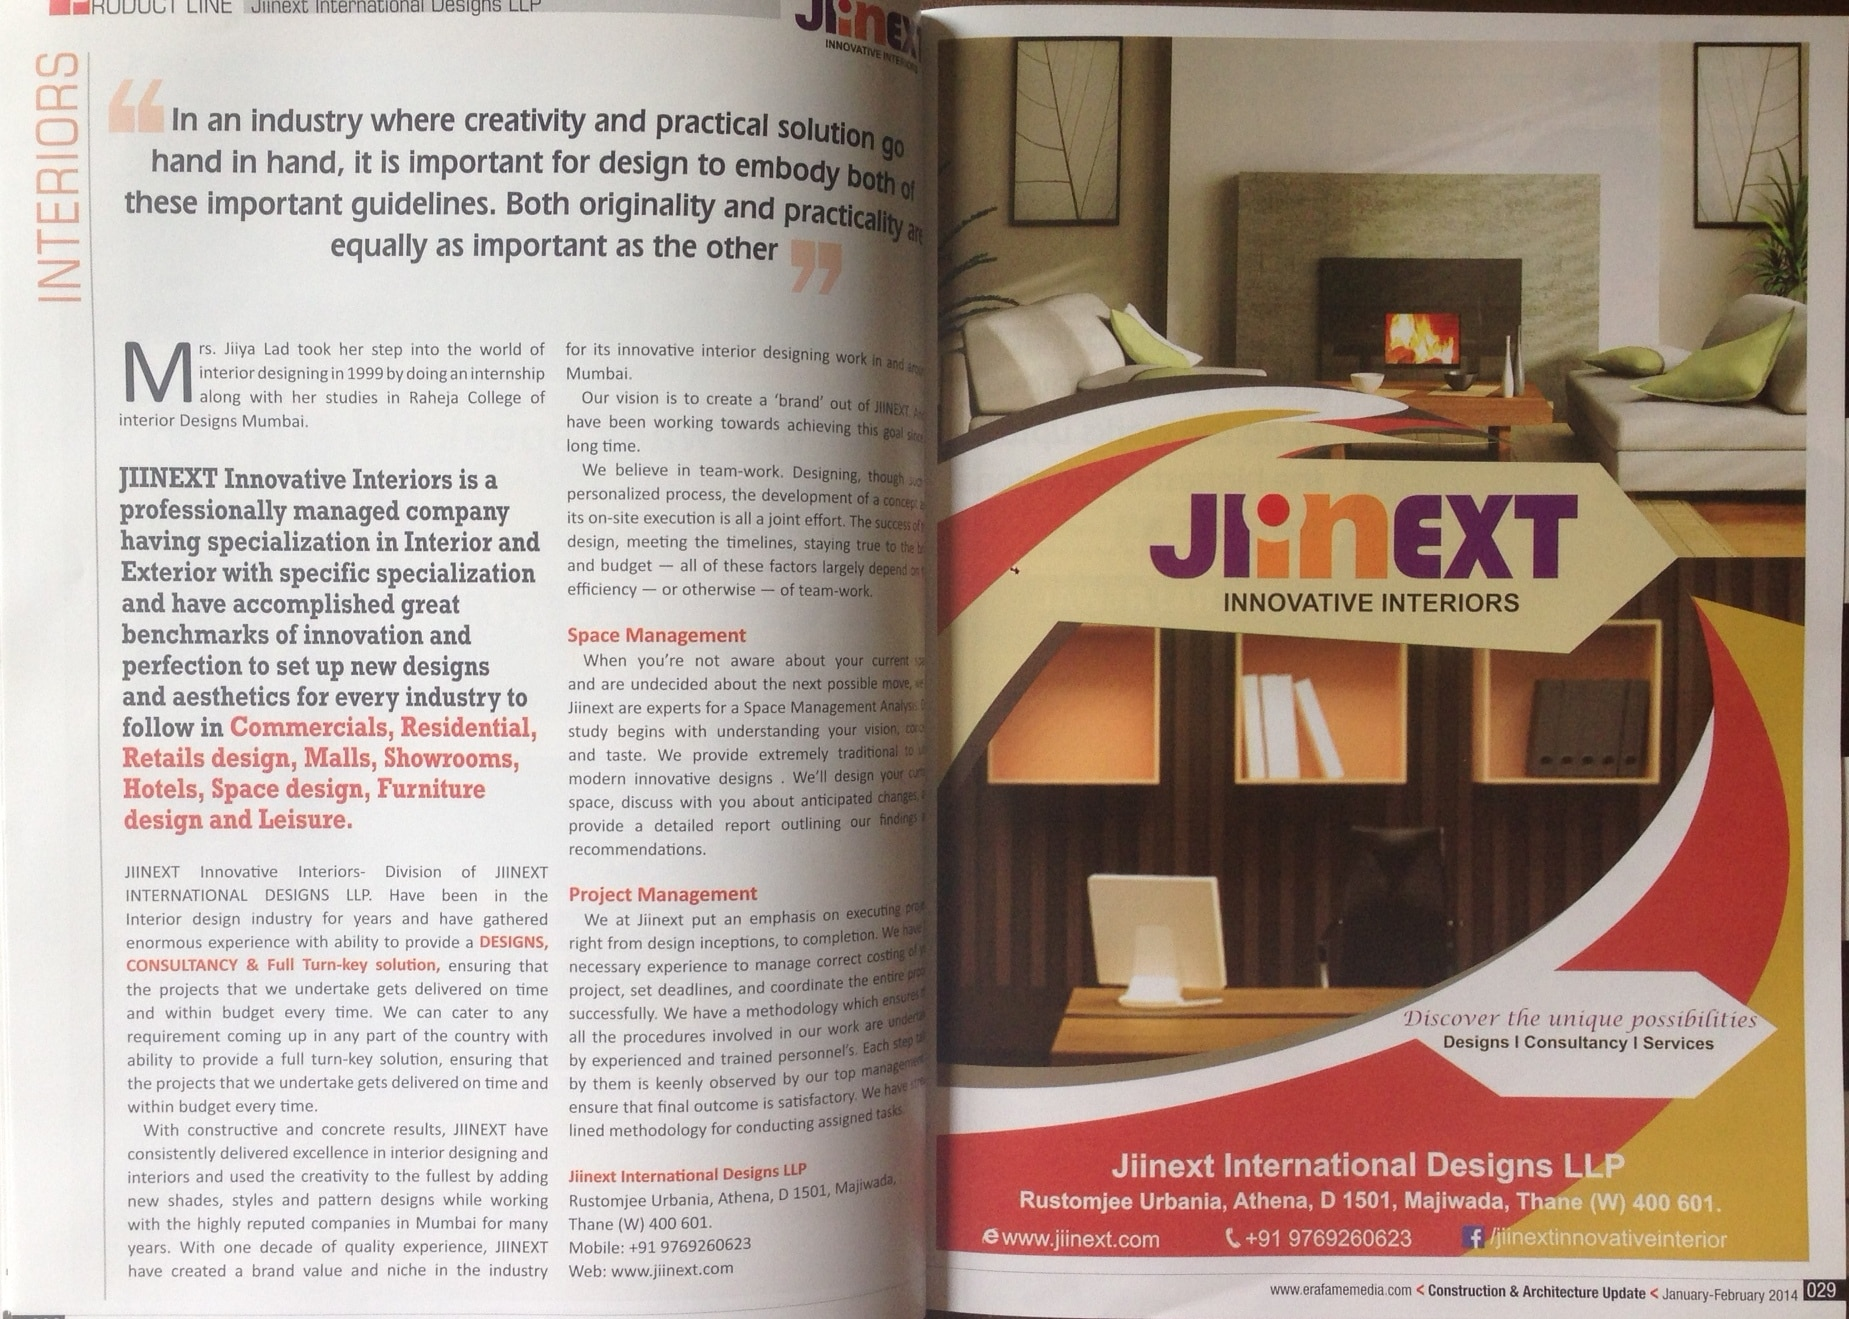 Jiinext International Designs LLP